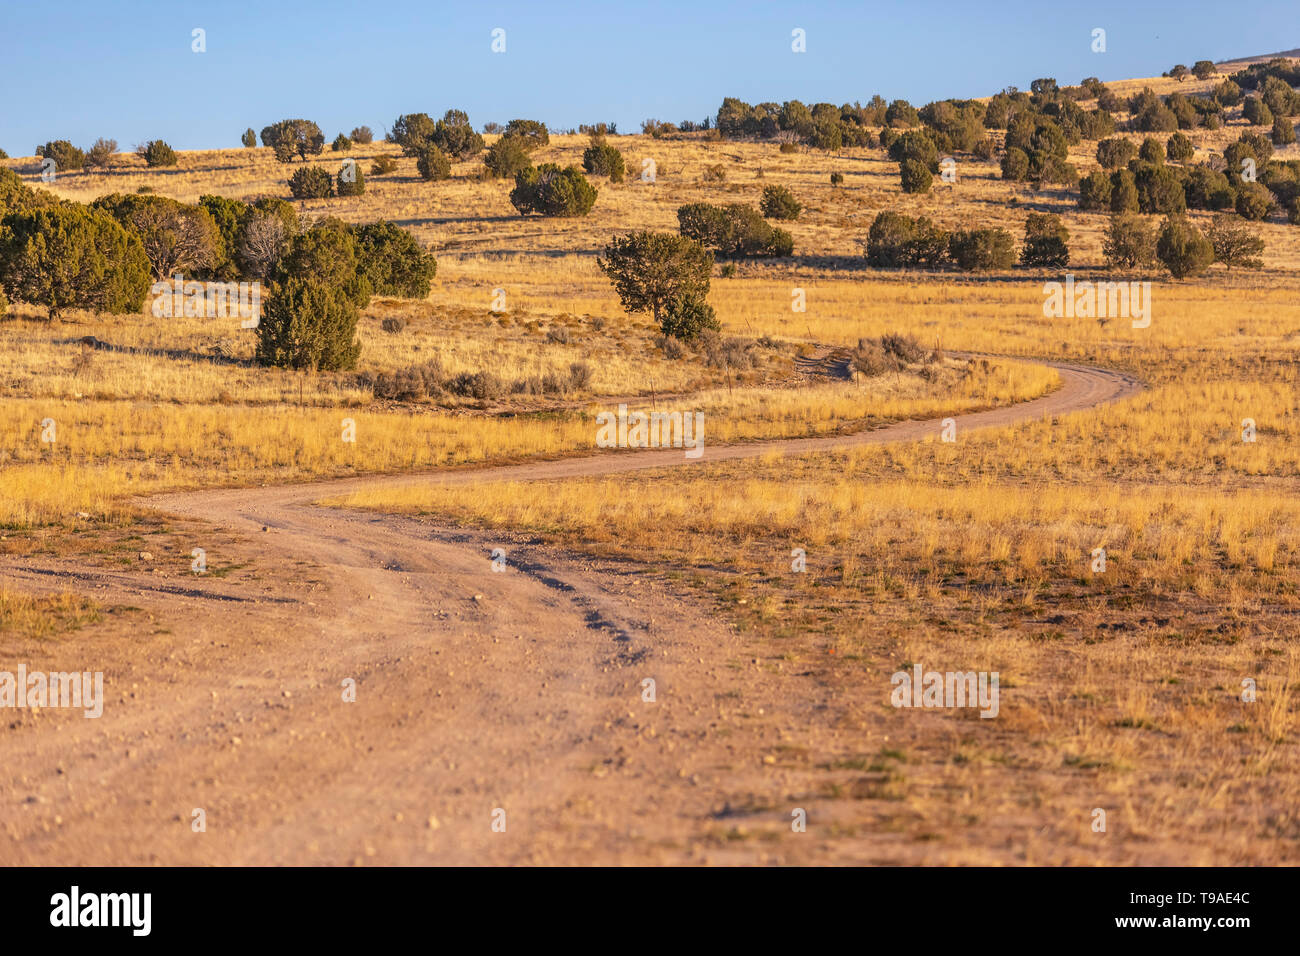 Unpaved trail winding through a vast grassy terrain viewed on a sunny day - Stock Image